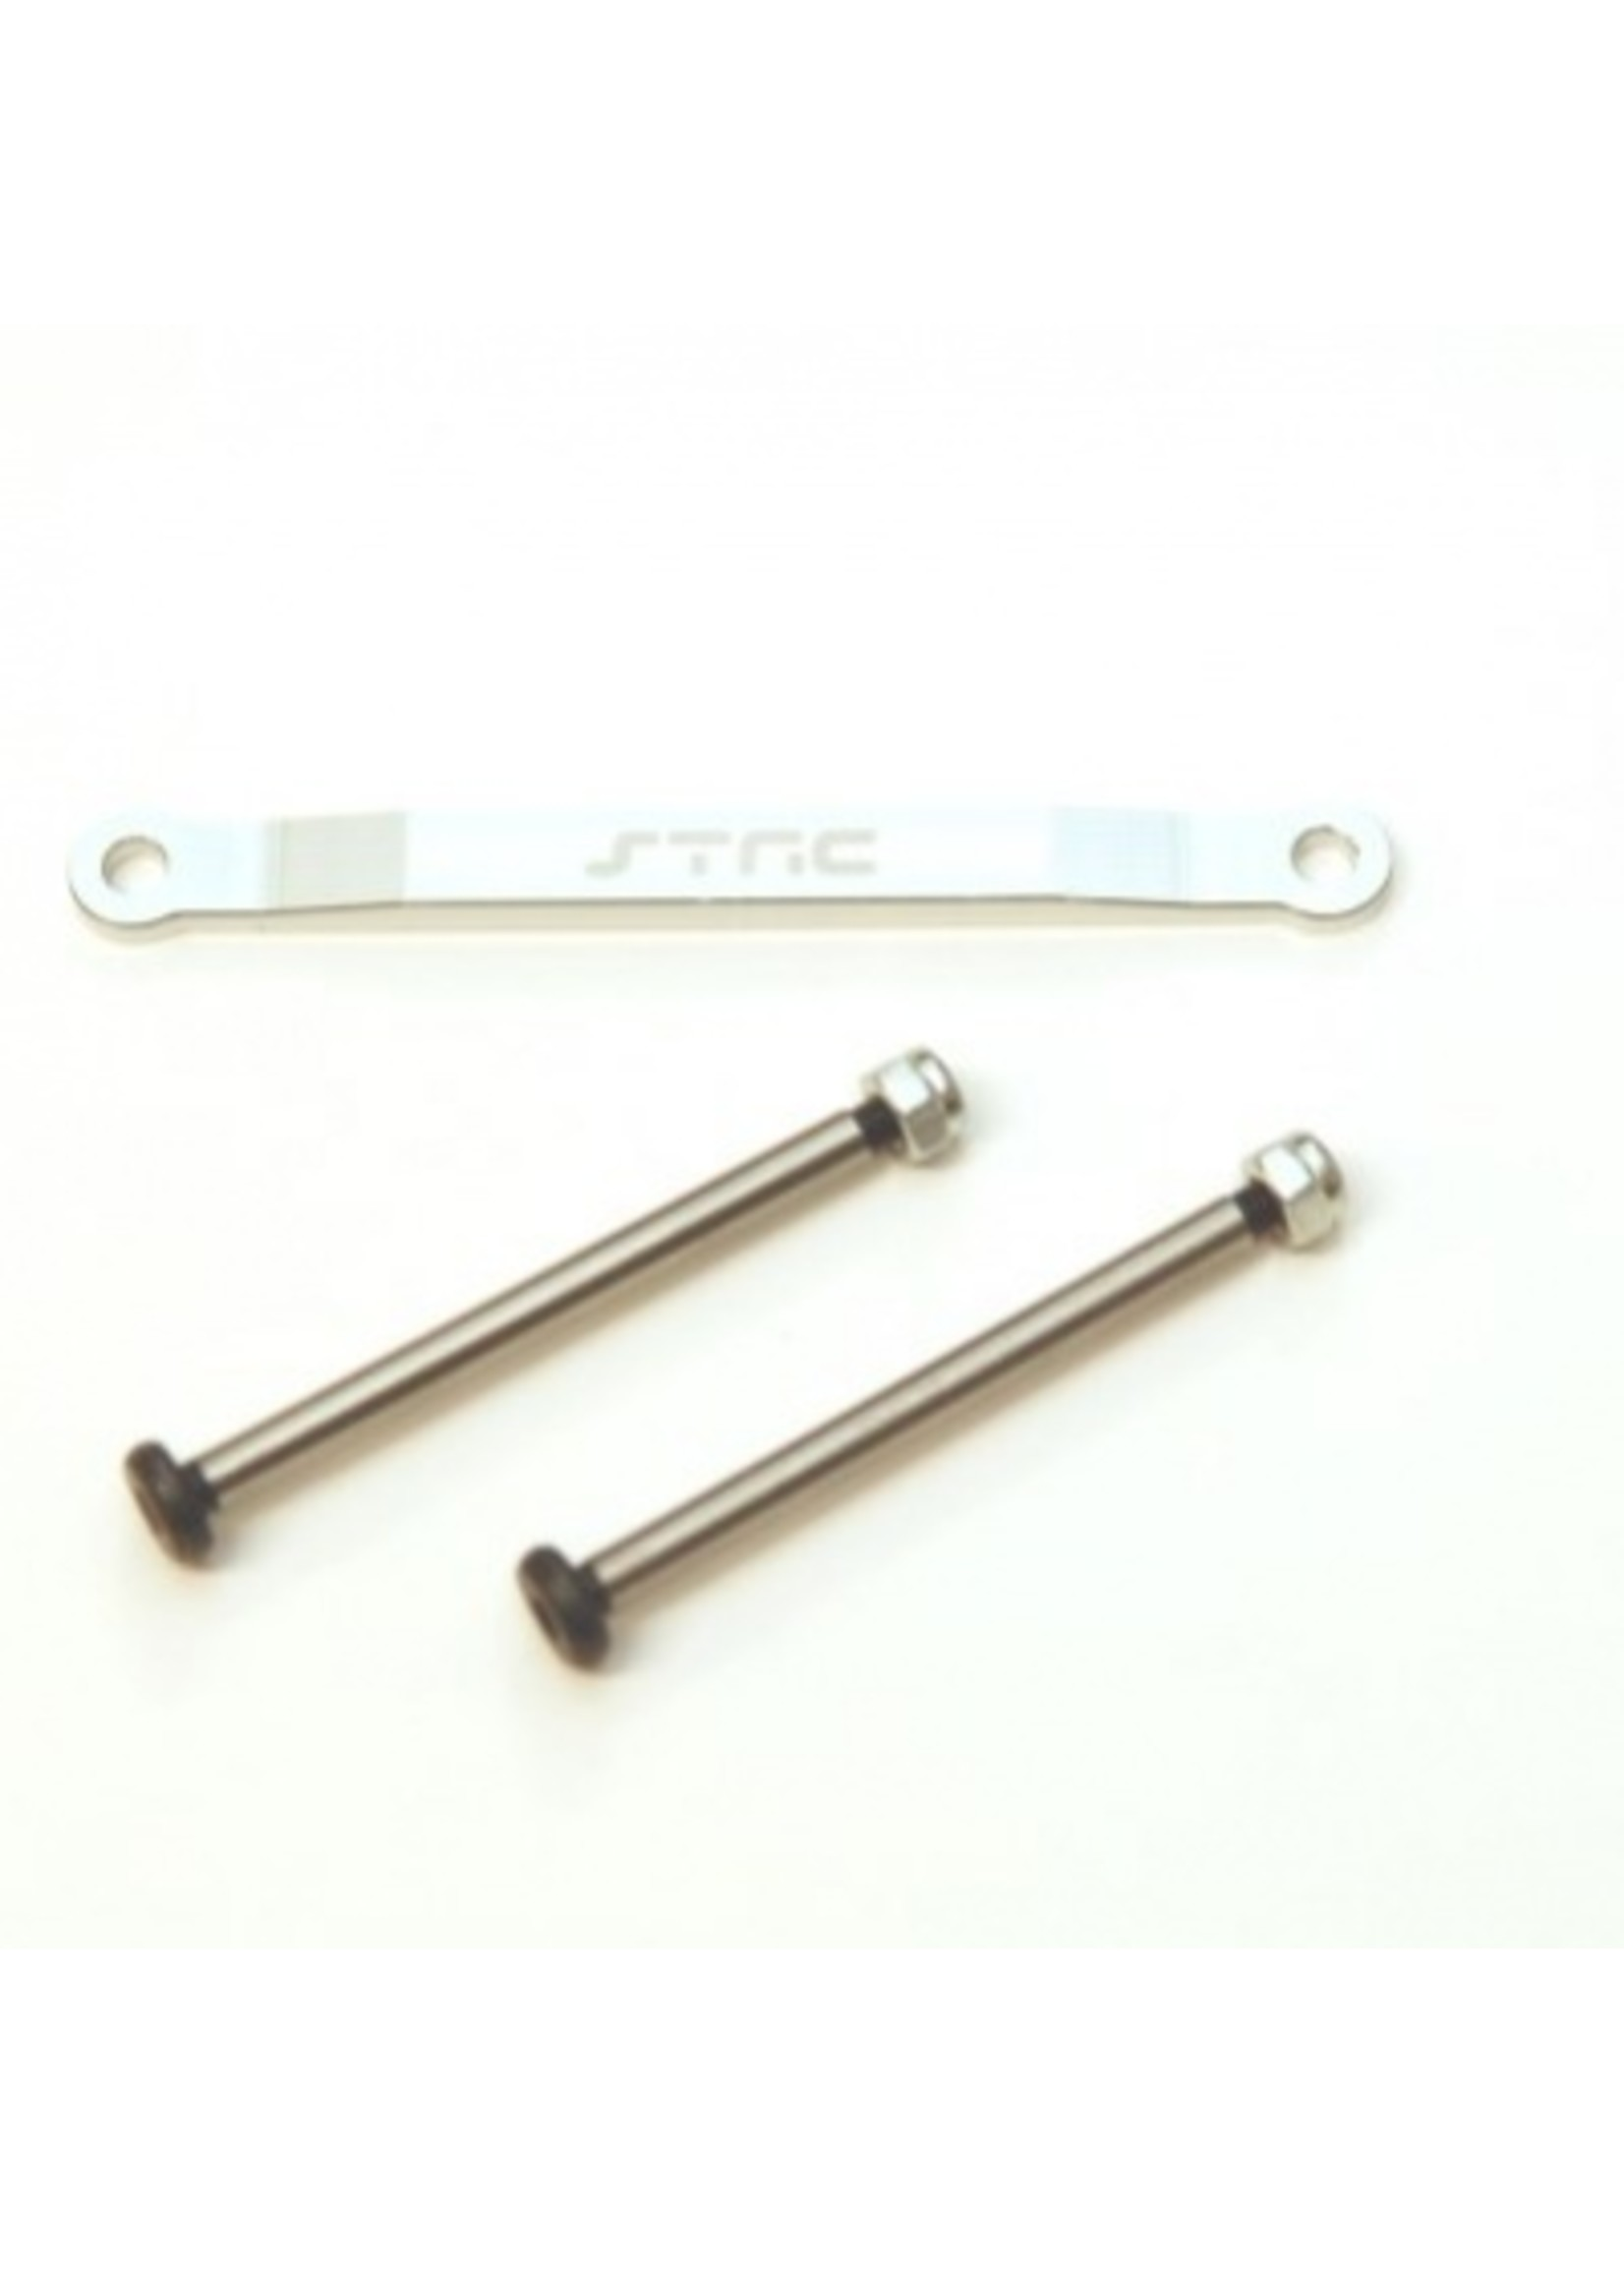 ST Racing Concepts SPTST2532XS ST Racing Concepts CNC Aluminum Front Hingepin Brace Kit, w/Lock-nut STyle Hingepins (Silver)